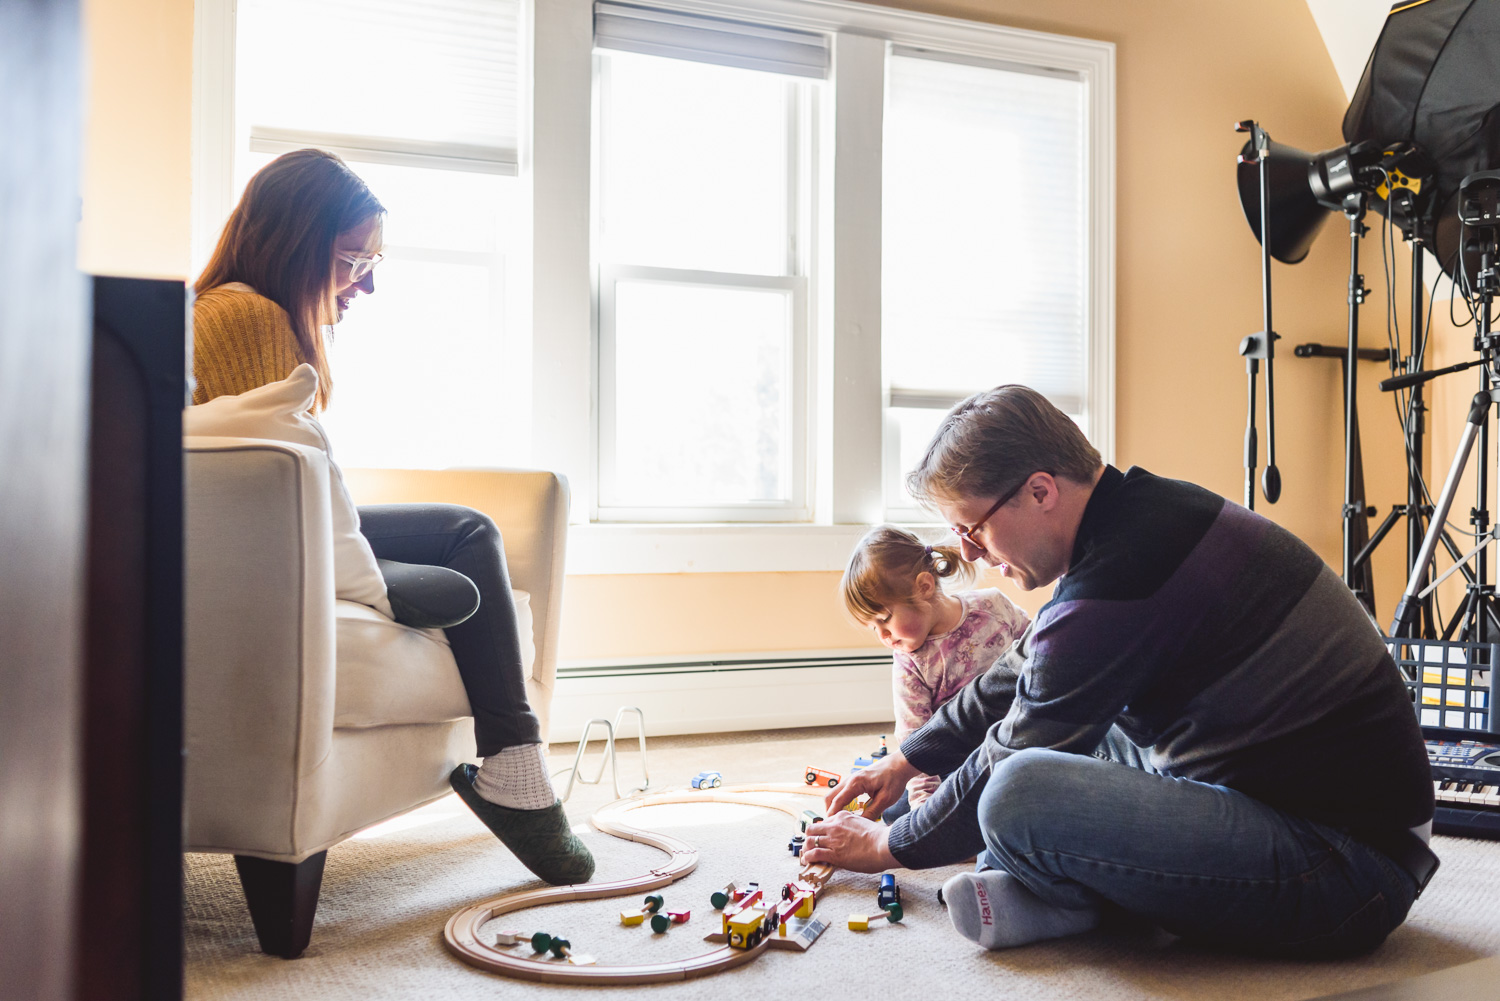 Family playing with a train set.